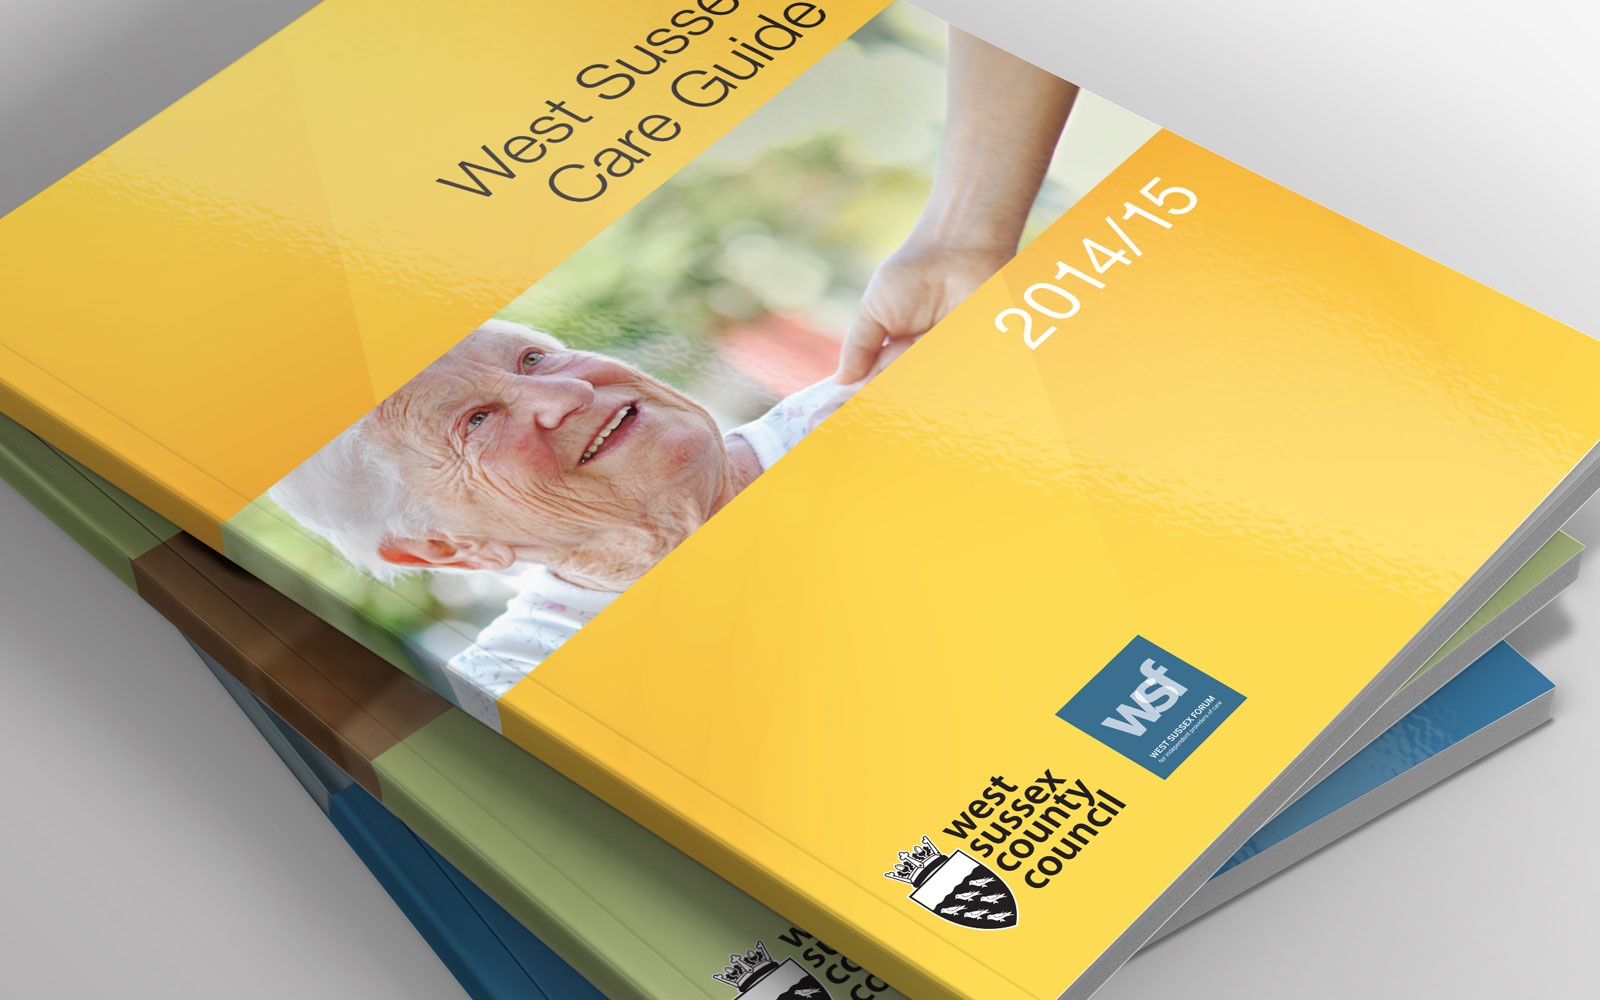 The official West Sussex Care Guide – new 2015/16 edition coming soon!